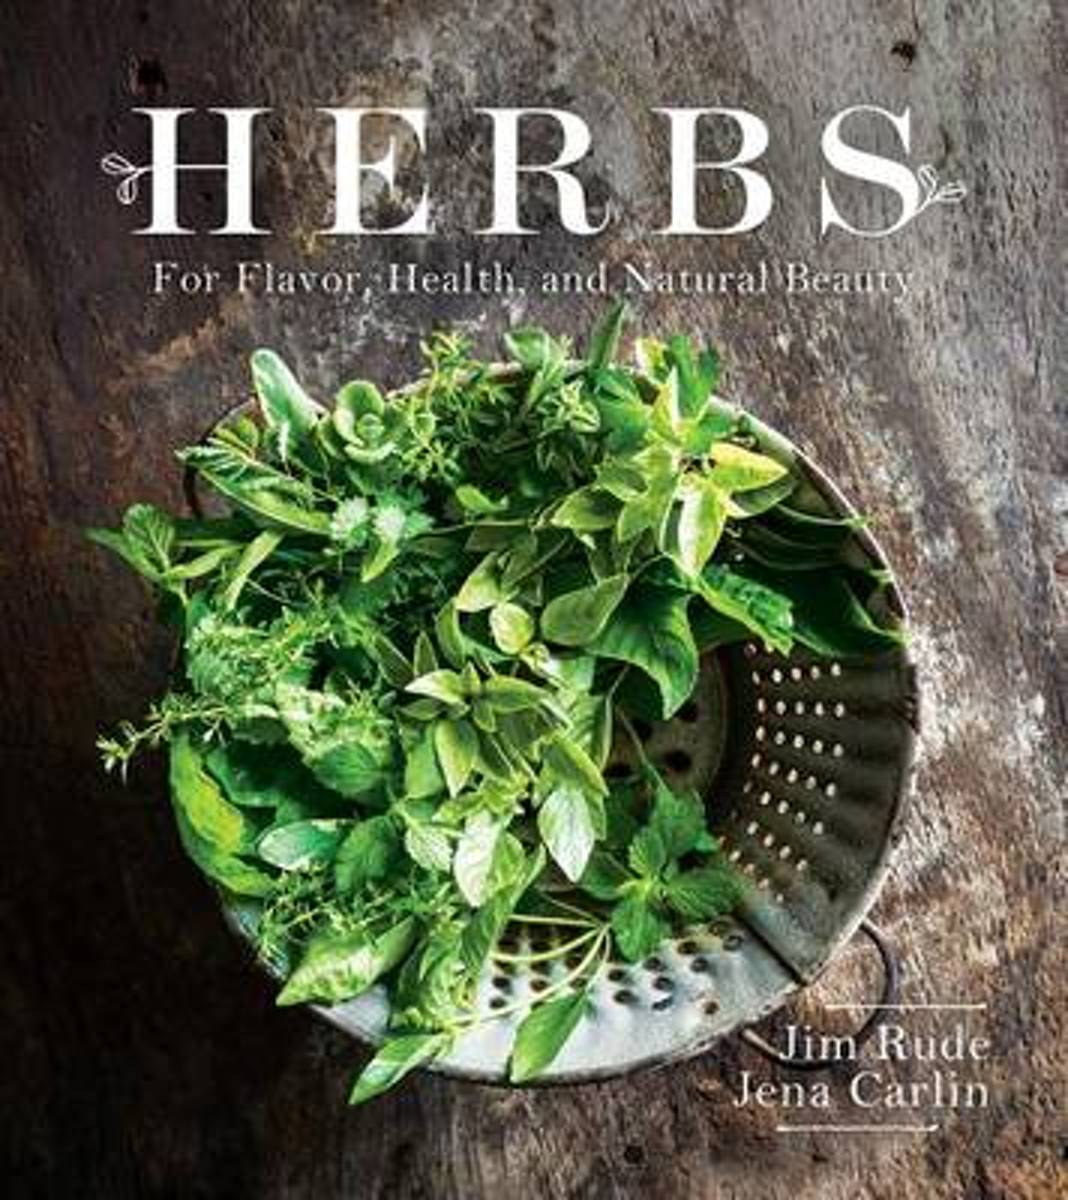 Herbs for Flavor, Healing, and Natural Beauty